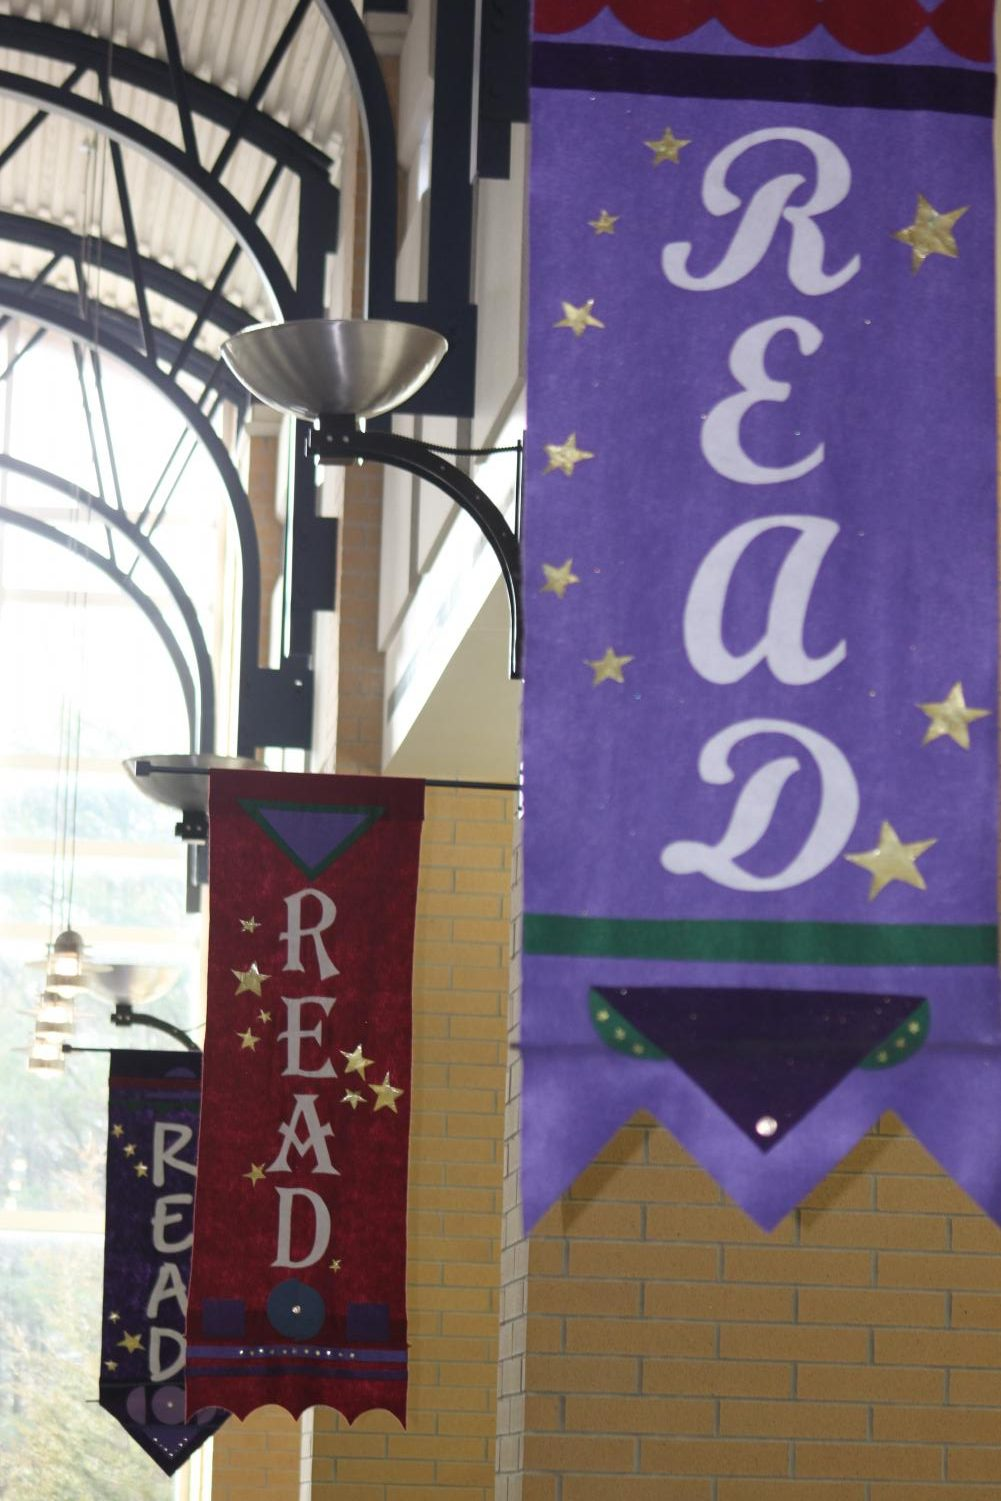 Banners in the library set the mood for reading. A steady flow of students make their way through the library daily.